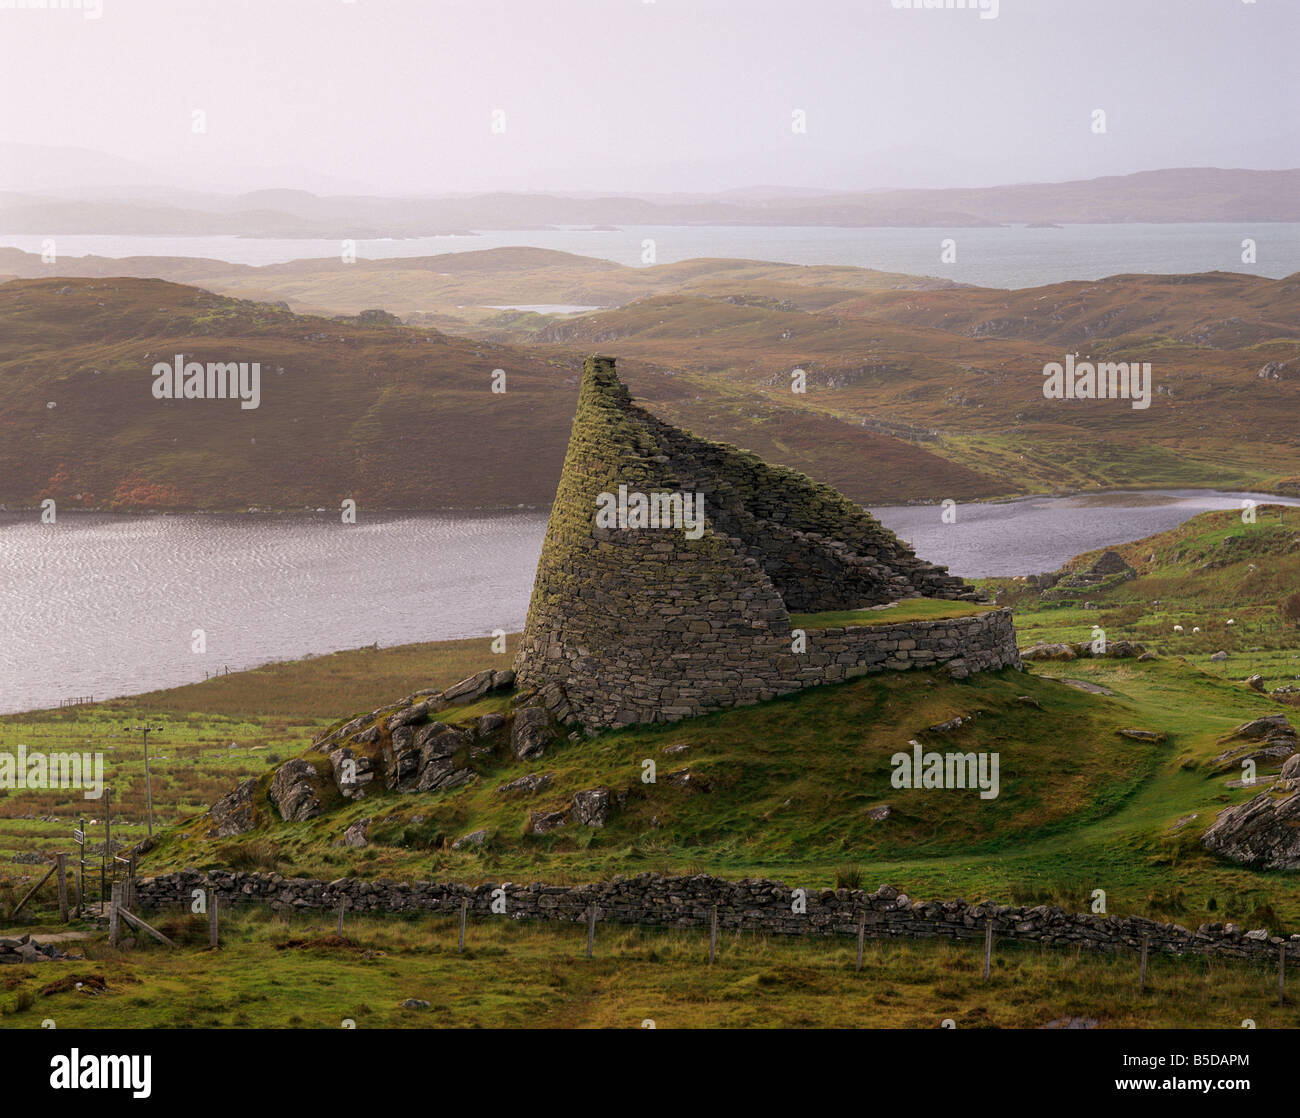 Dun Carloway broch, one of the best preserved in ScotlandLewis, Outer Hebrides, Scotland - Stock Image